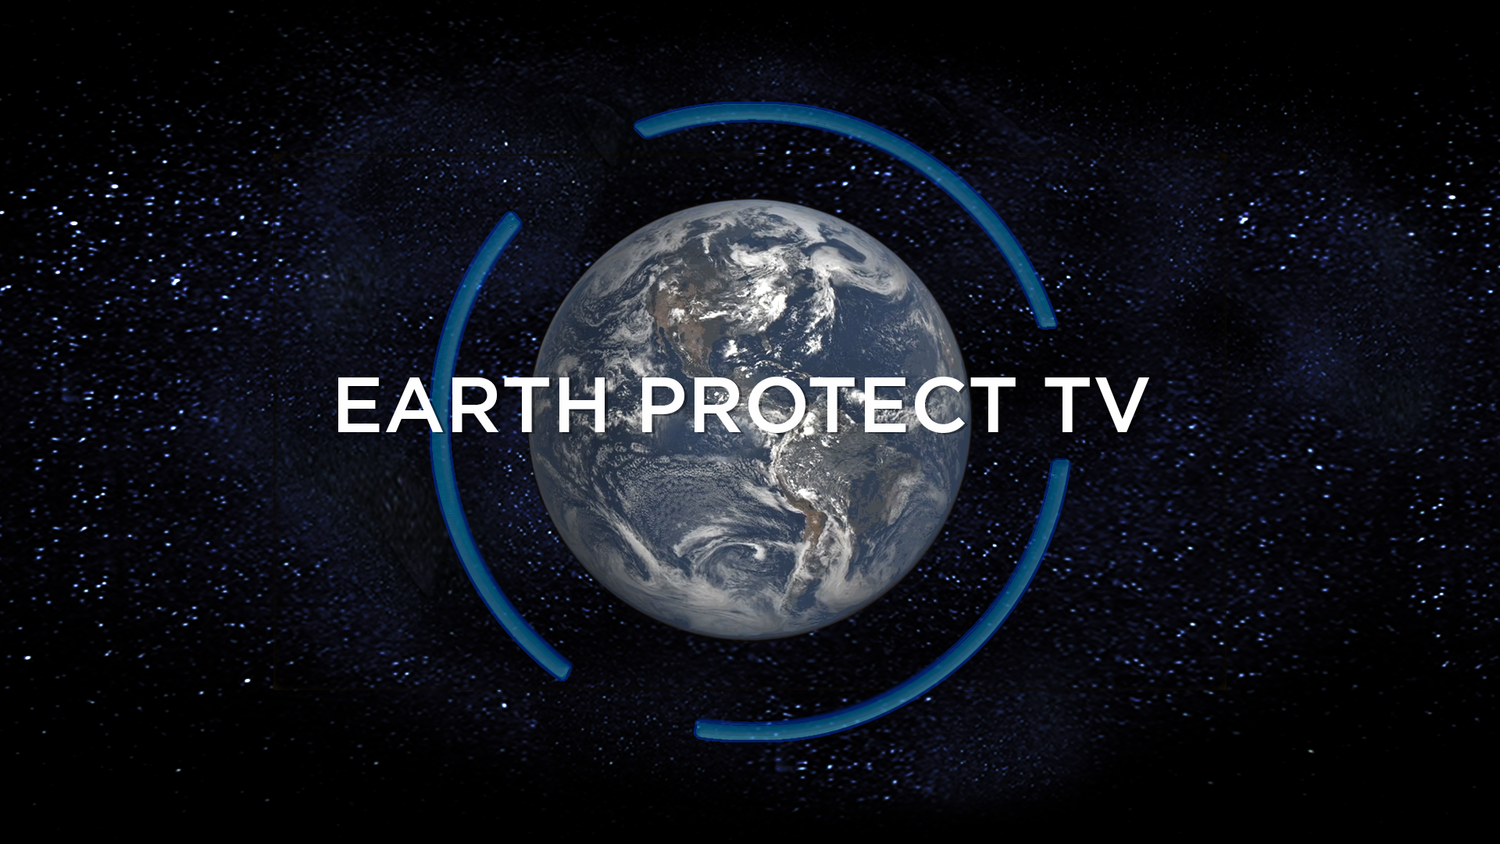 Earth Protect TV